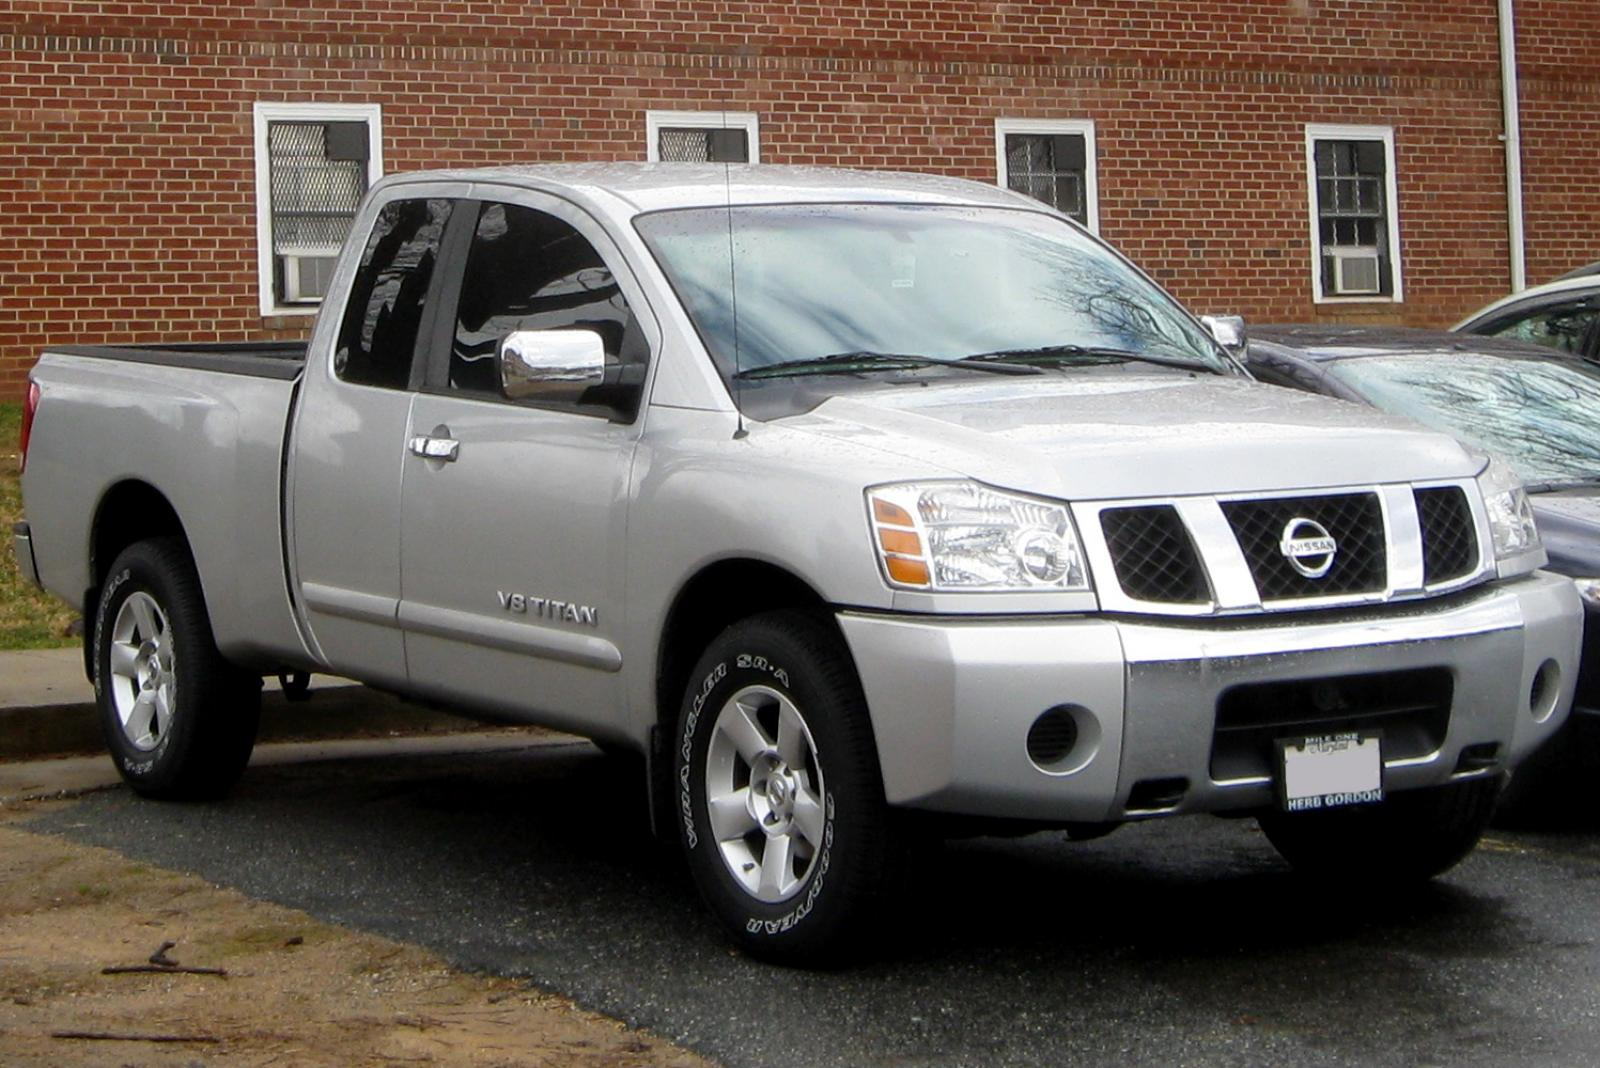 2004 nissan titan information and photos zombiedrive. Black Bedroom Furniture Sets. Home Design Ideas